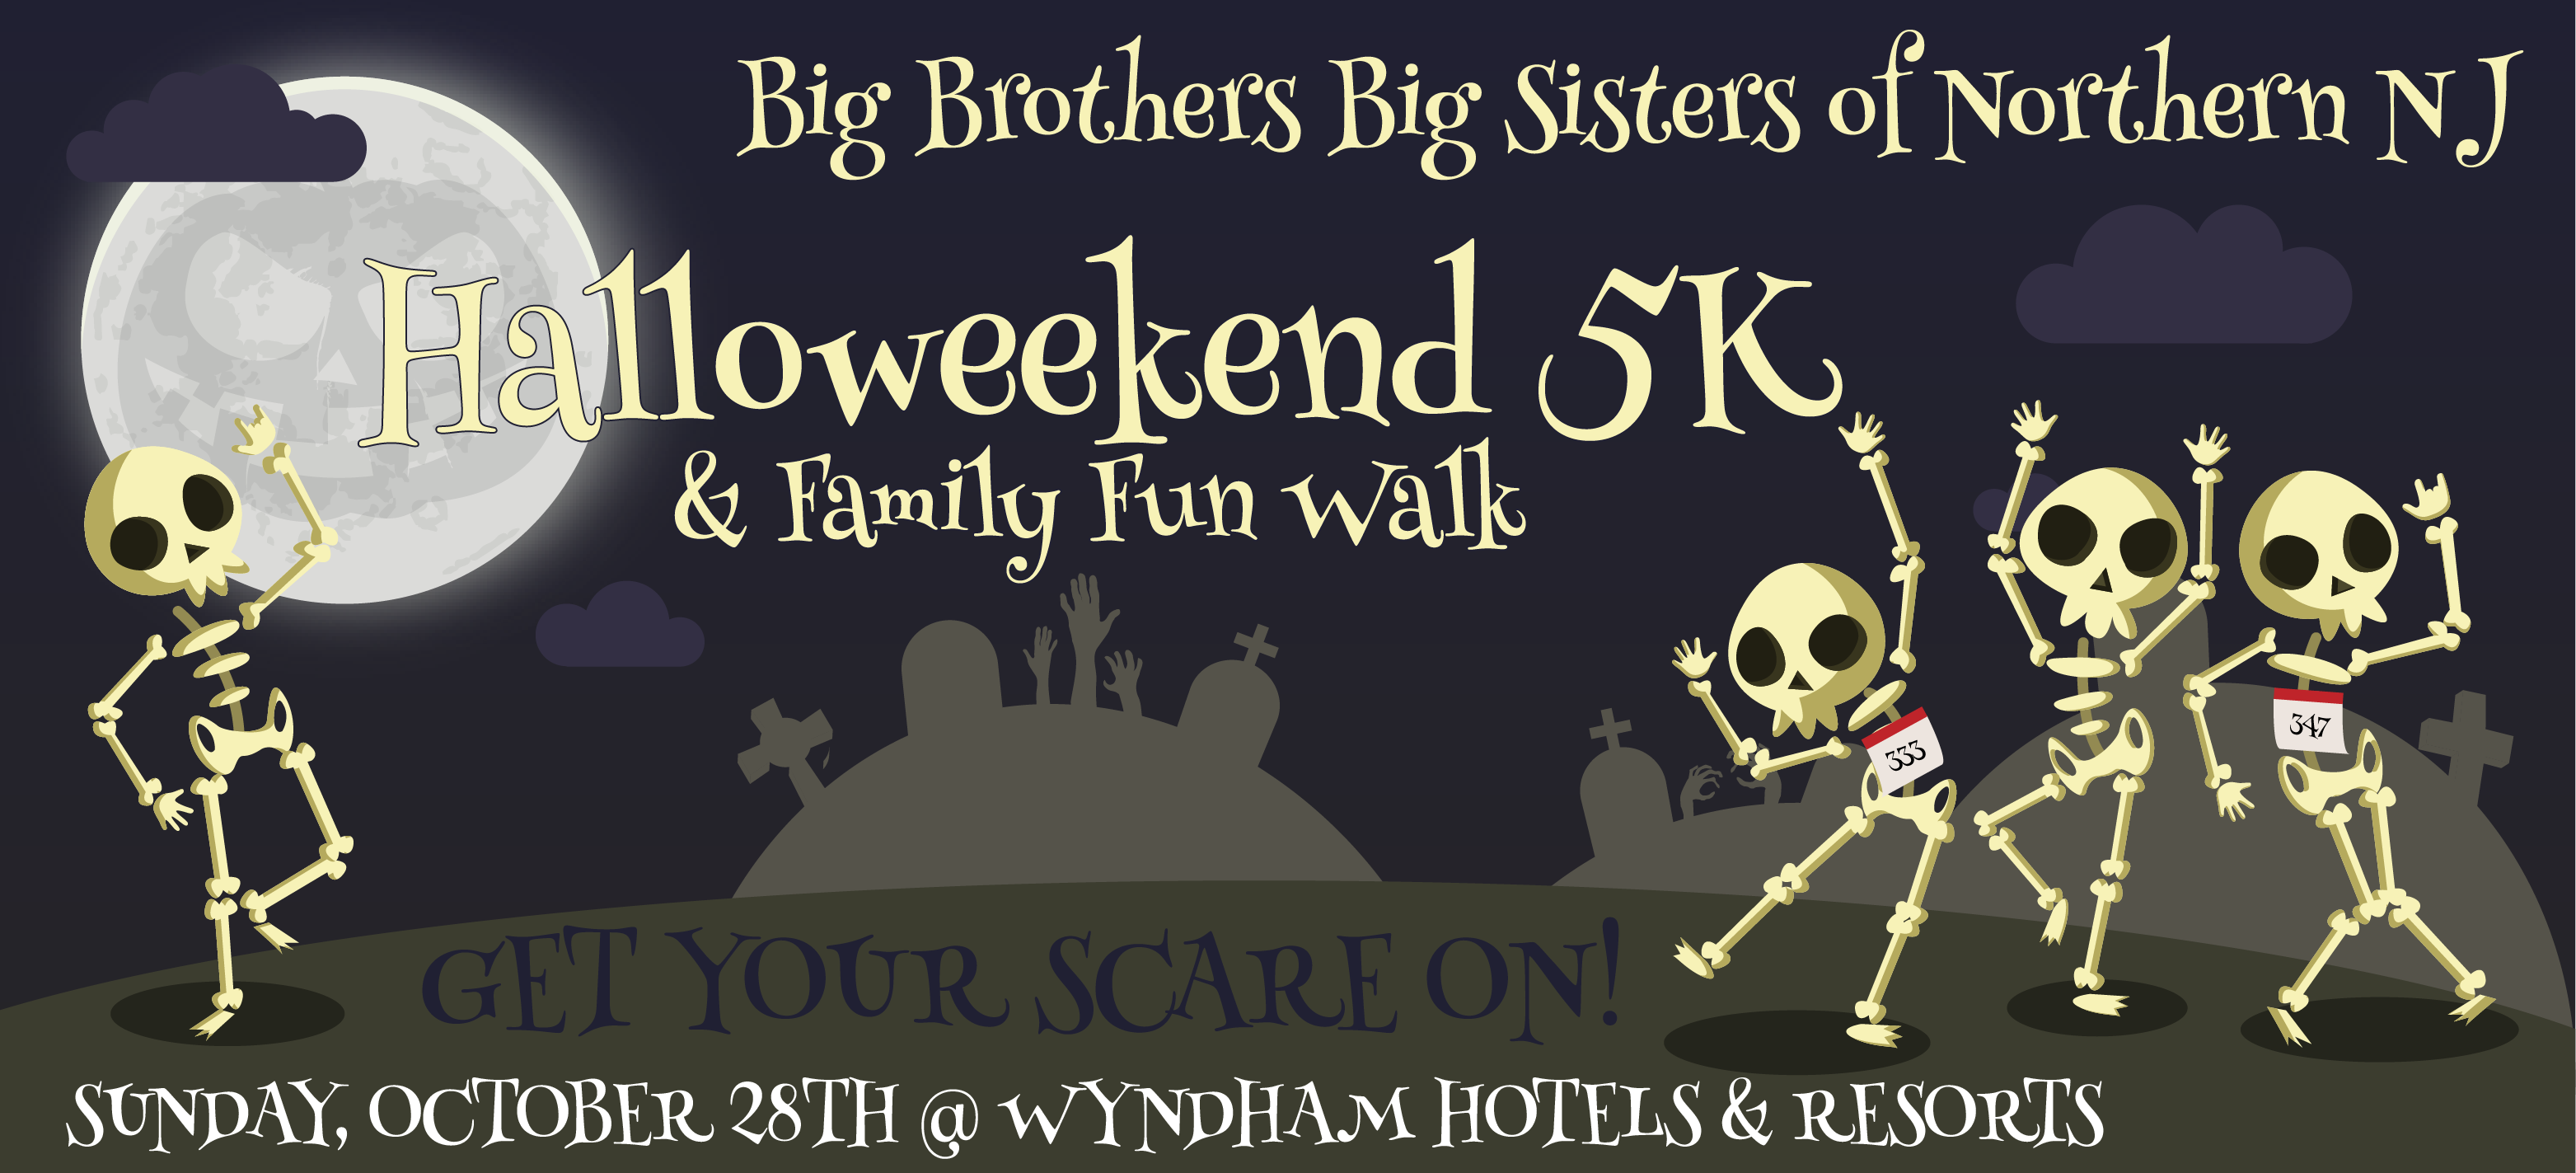 BBBSNNJ Halloweekend 5K